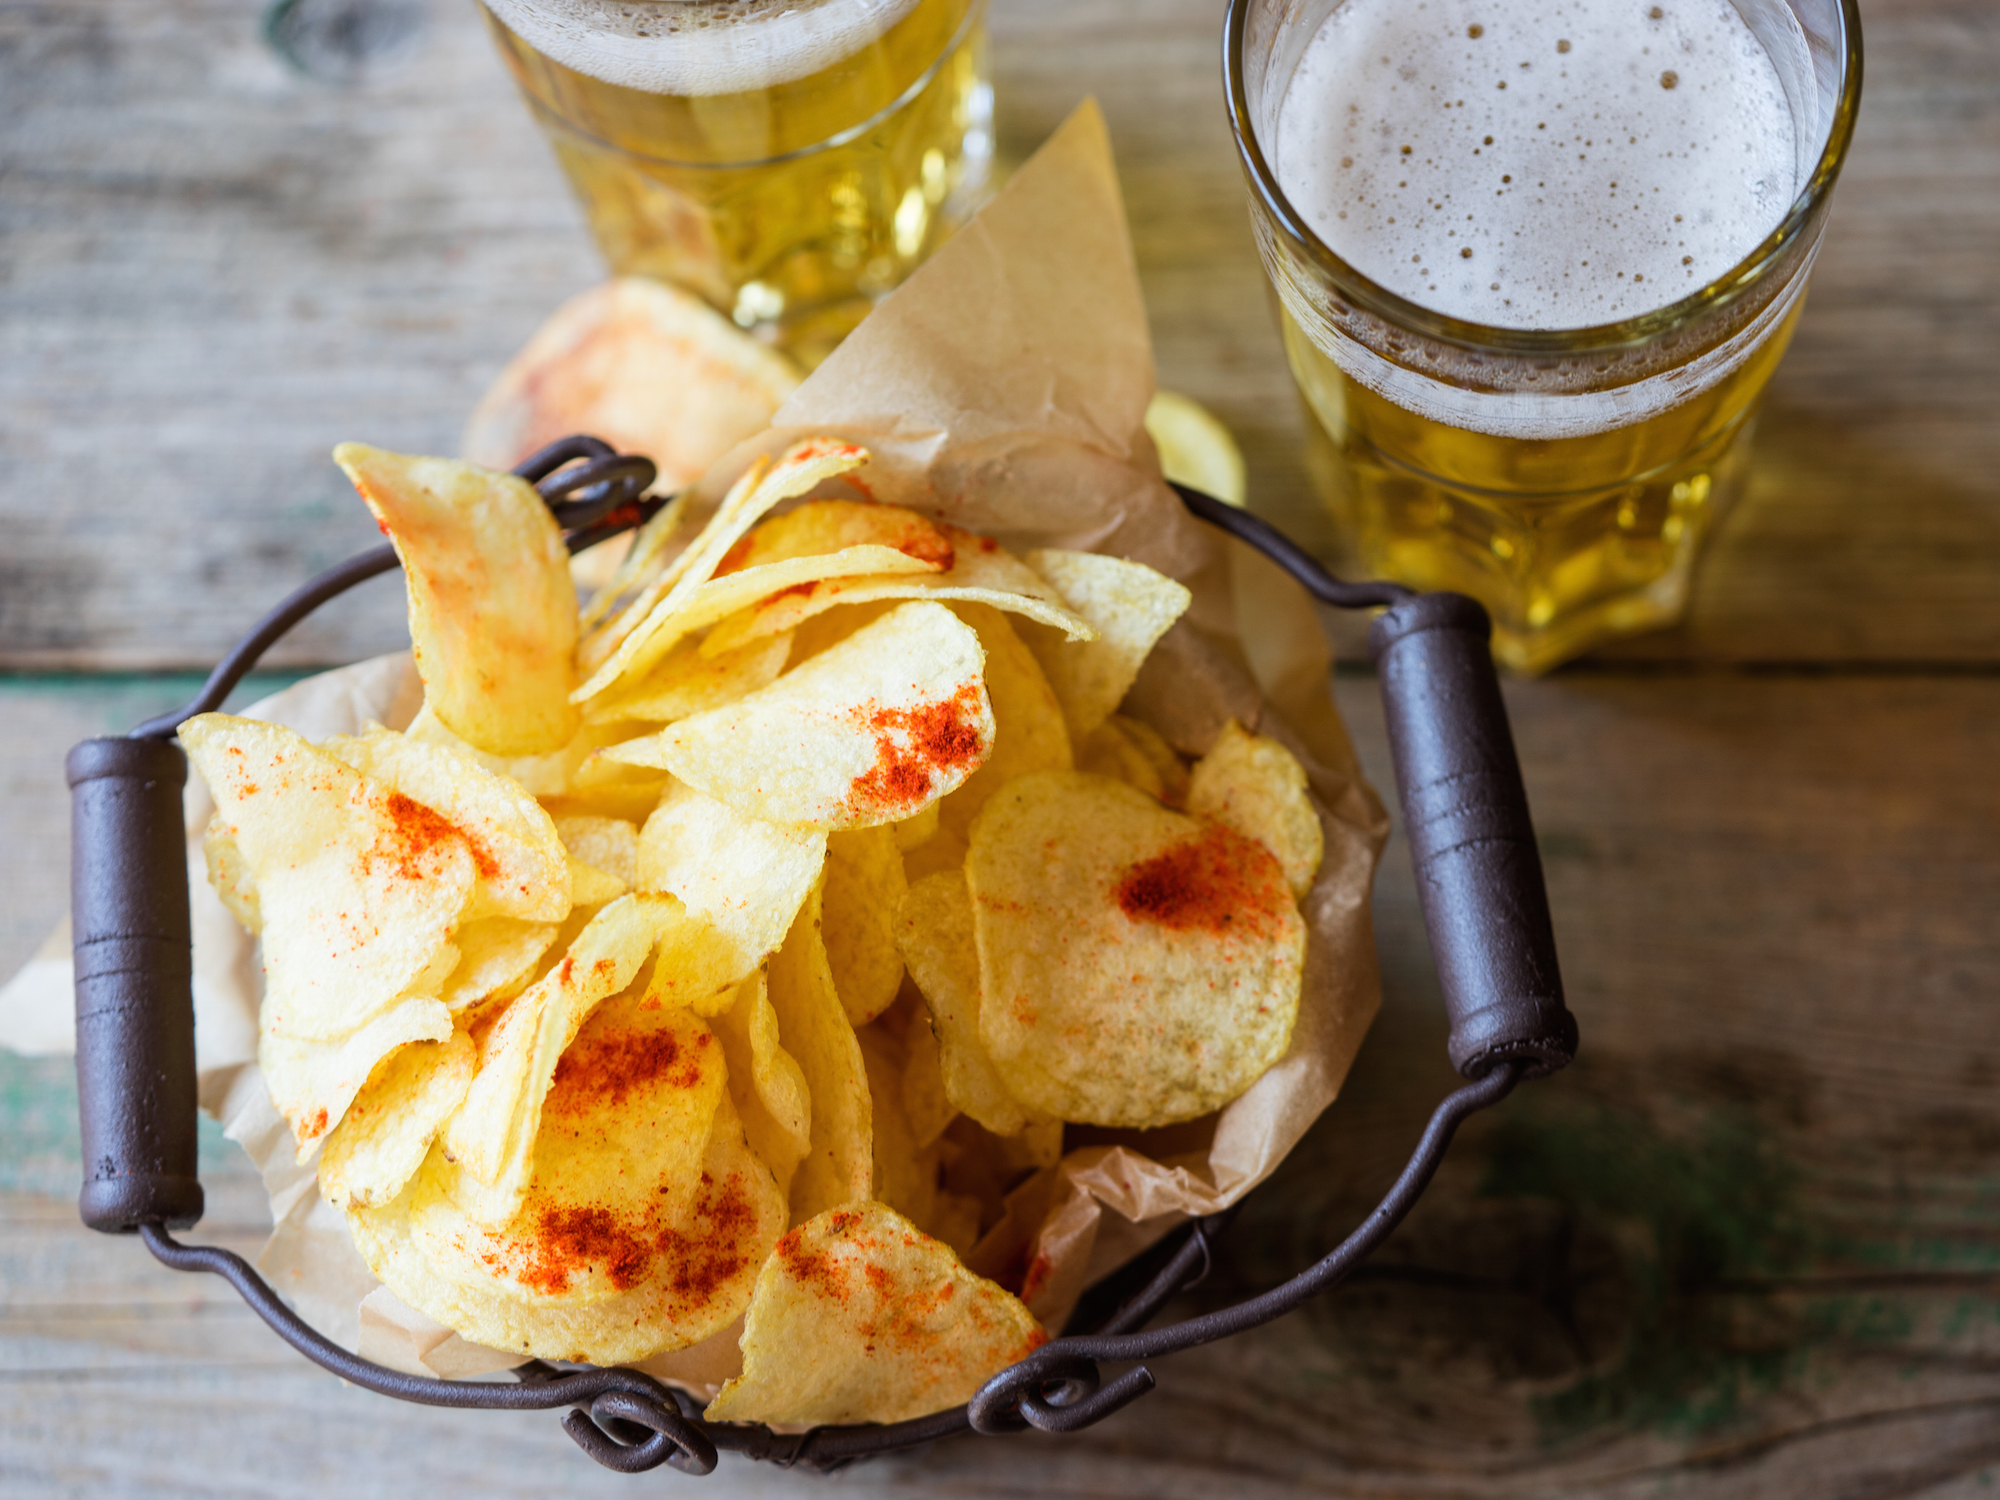 beer-and-chips.jpg